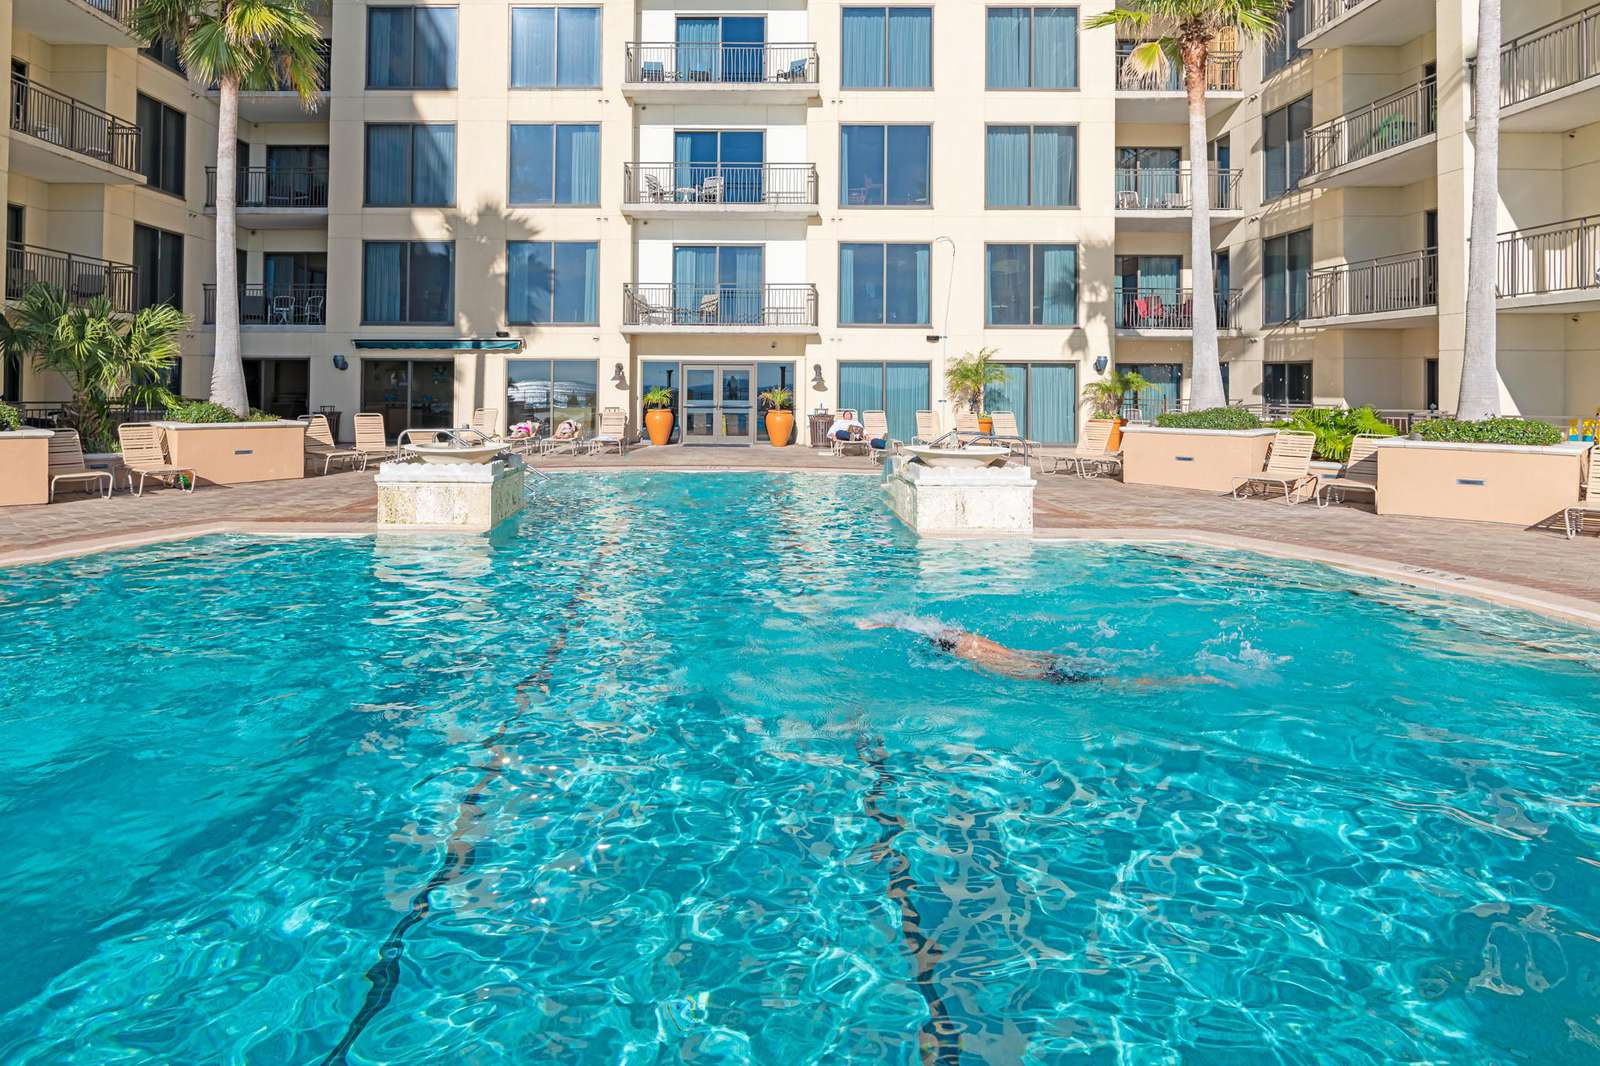 Take a few laps in the pool after a long day at the beach!